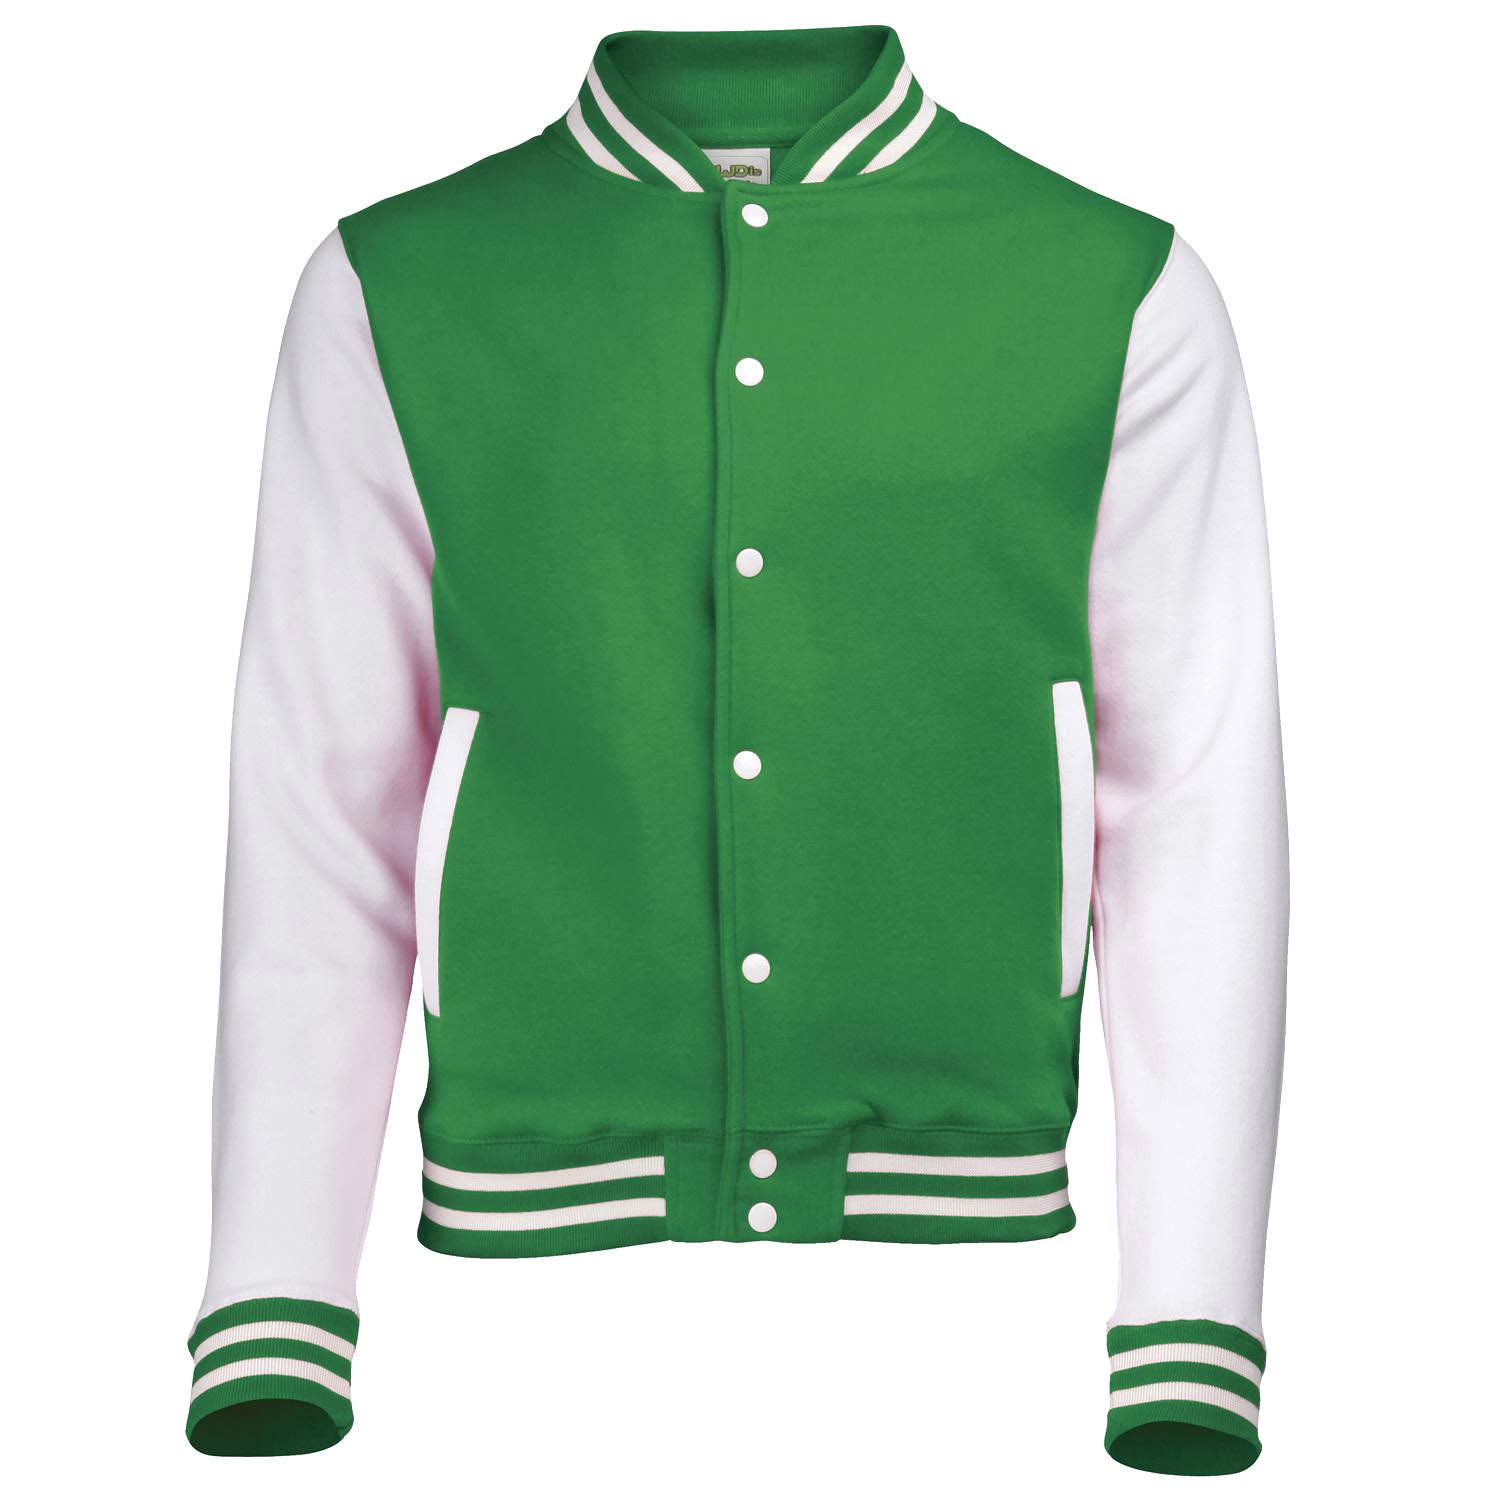 Awdis Varsity jacket - 16 Colours - Sizes XS to 2XL - Jet Black/Fire Red - S at Amazon Womens Clothing store: